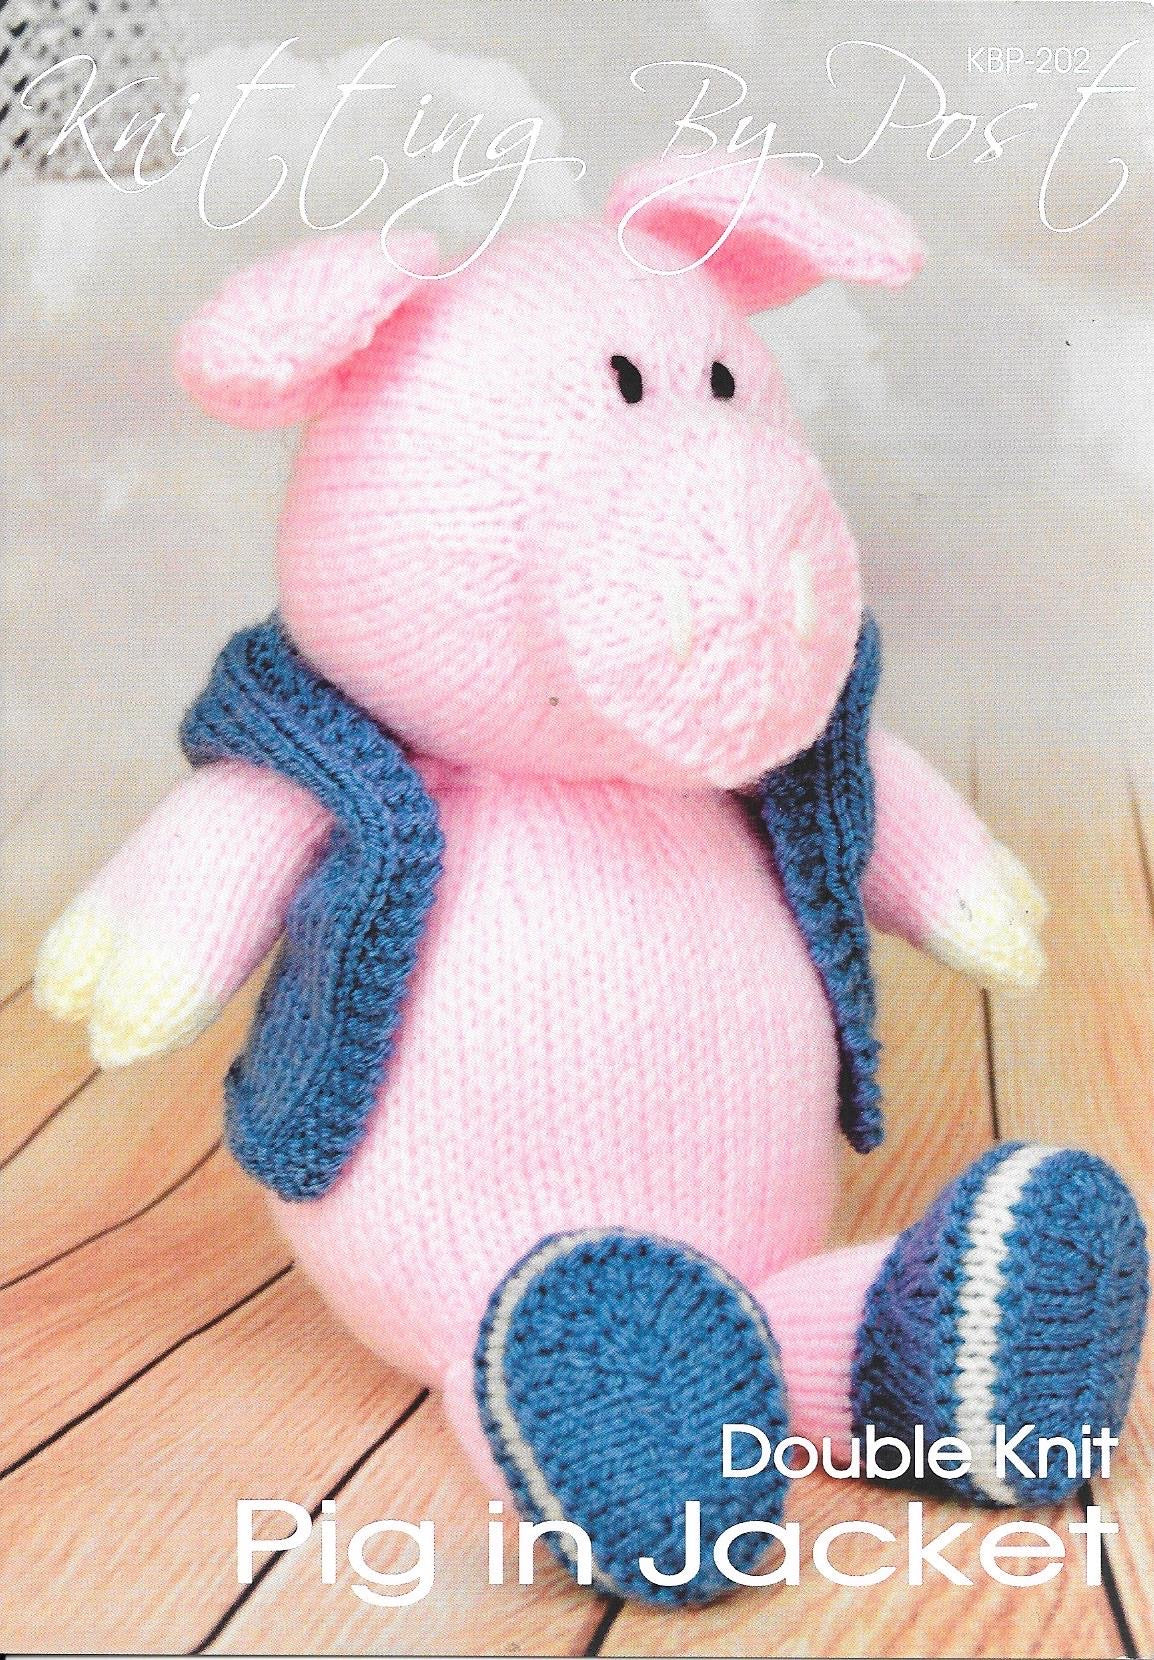 202 KBP202 Pig in Jacket toy in dk knitting pattern